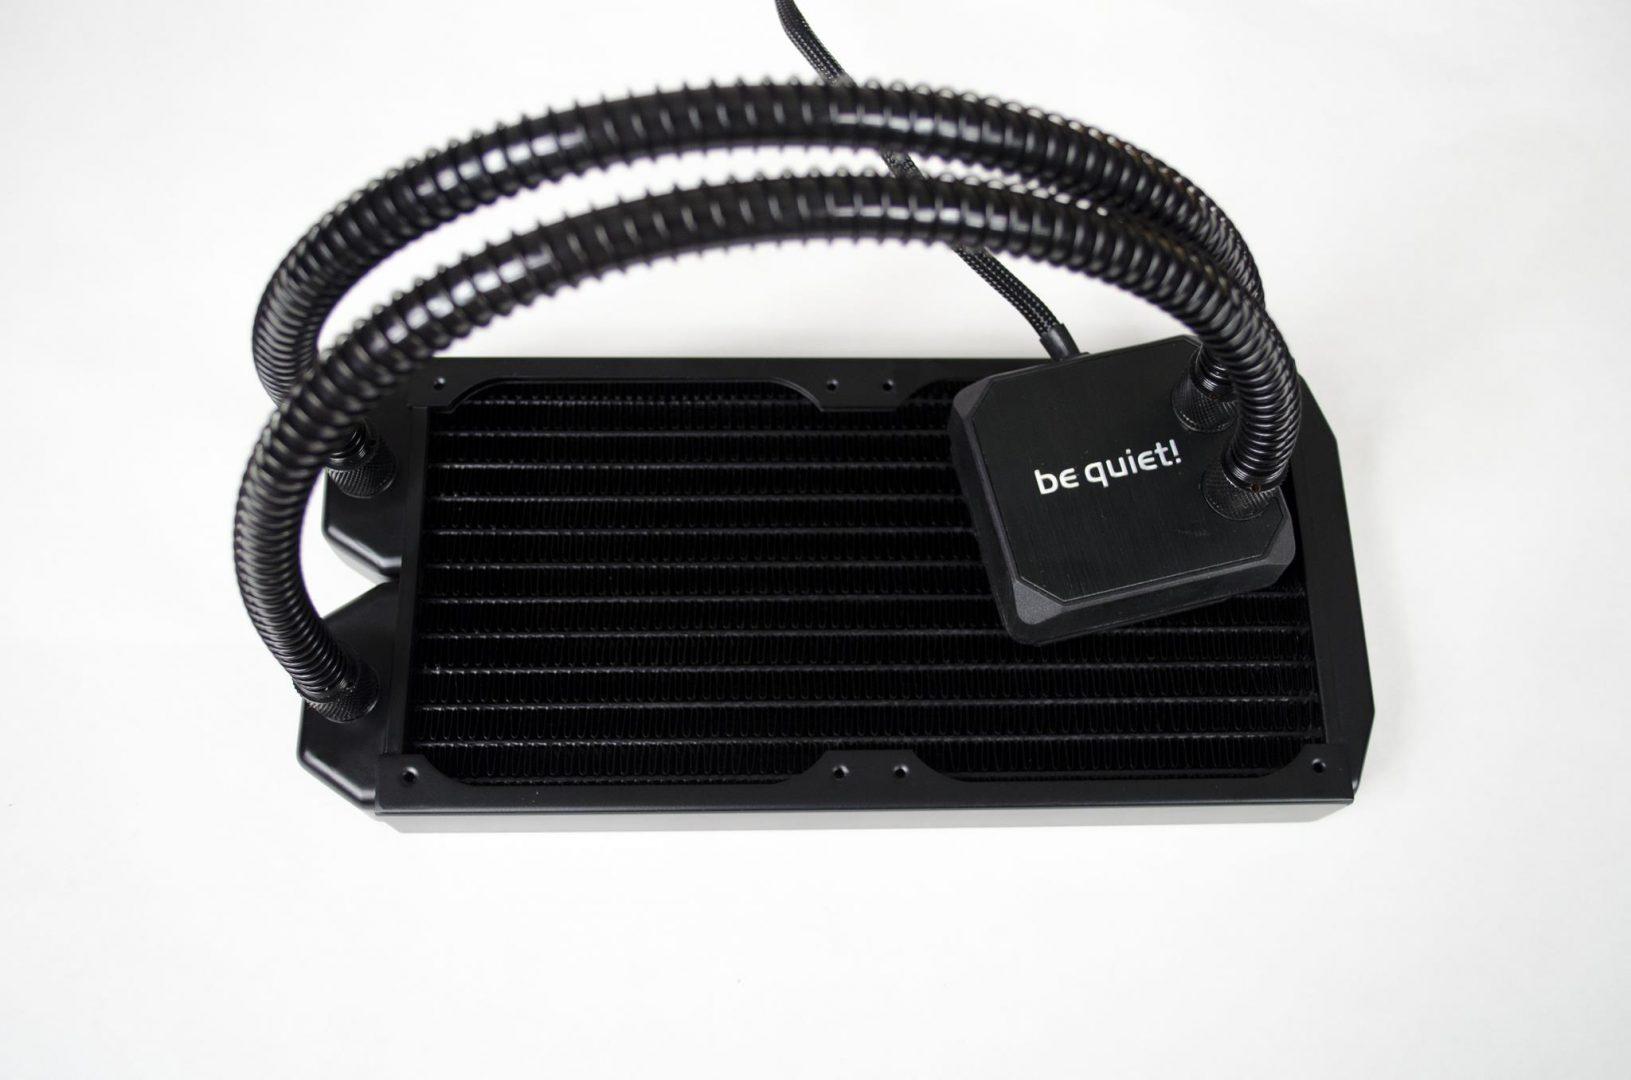 be-quiet-silent-loop-240-mm-aio-cpu-cooler-review_7